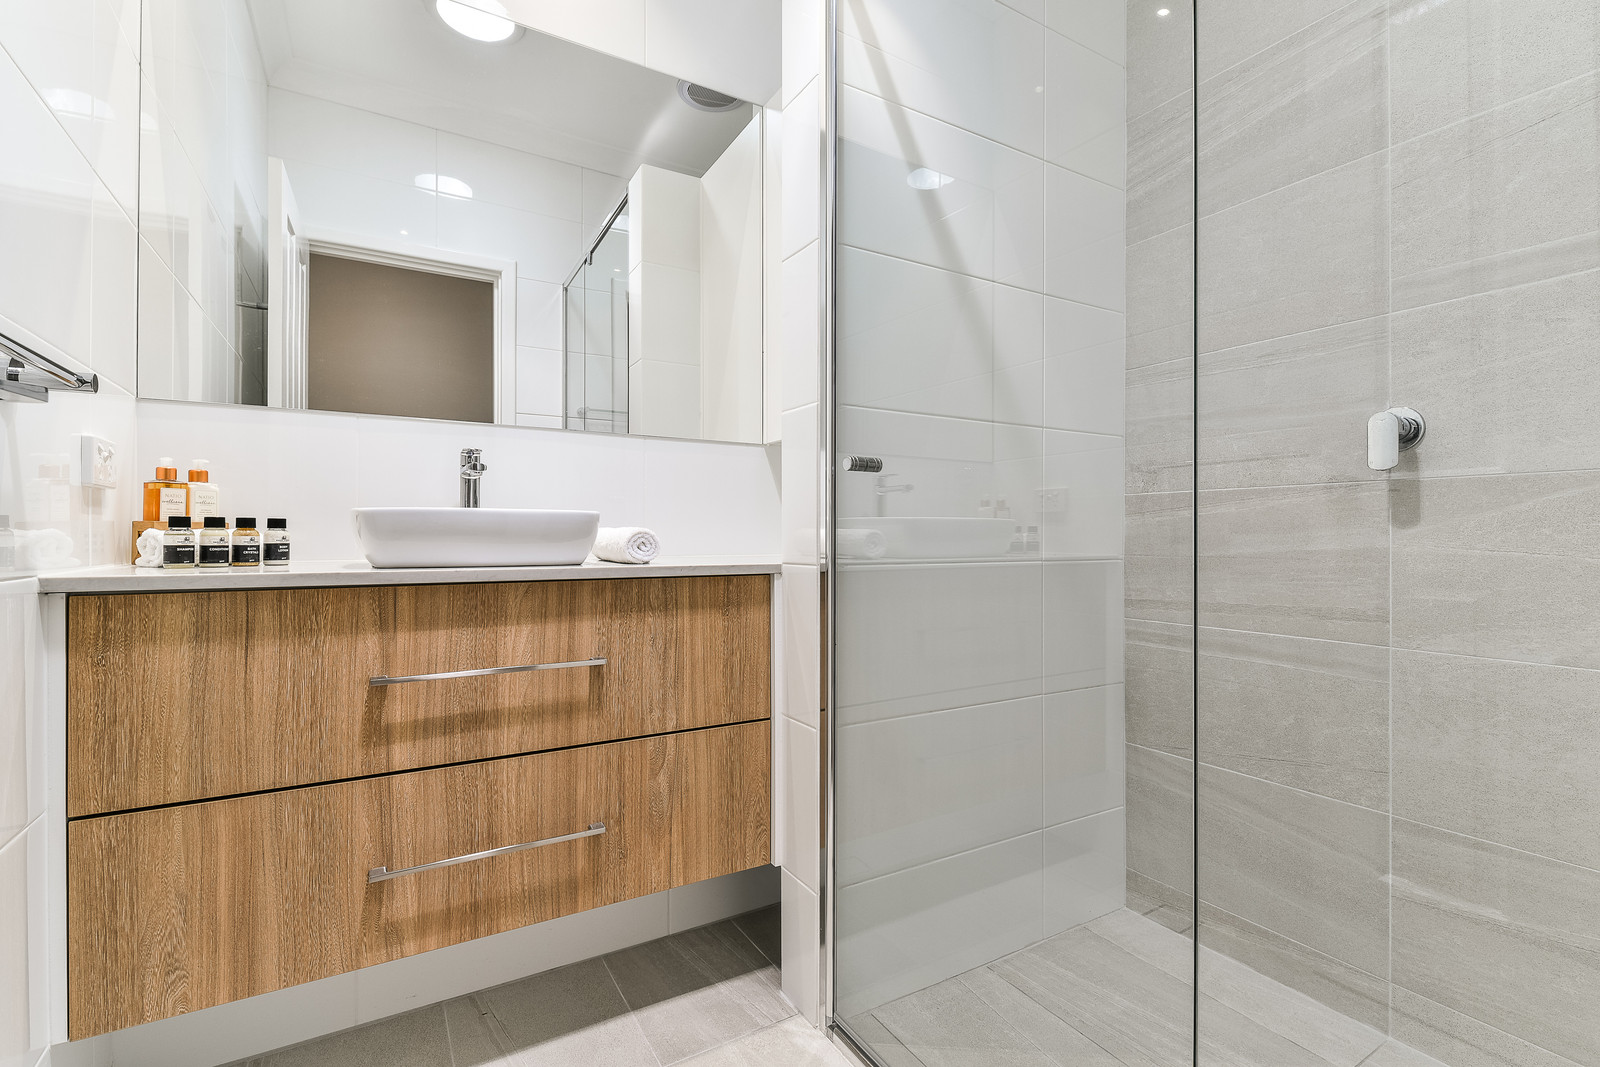 Bathroom Renovations Perth Western Australia | Bathroom ideas WA ...